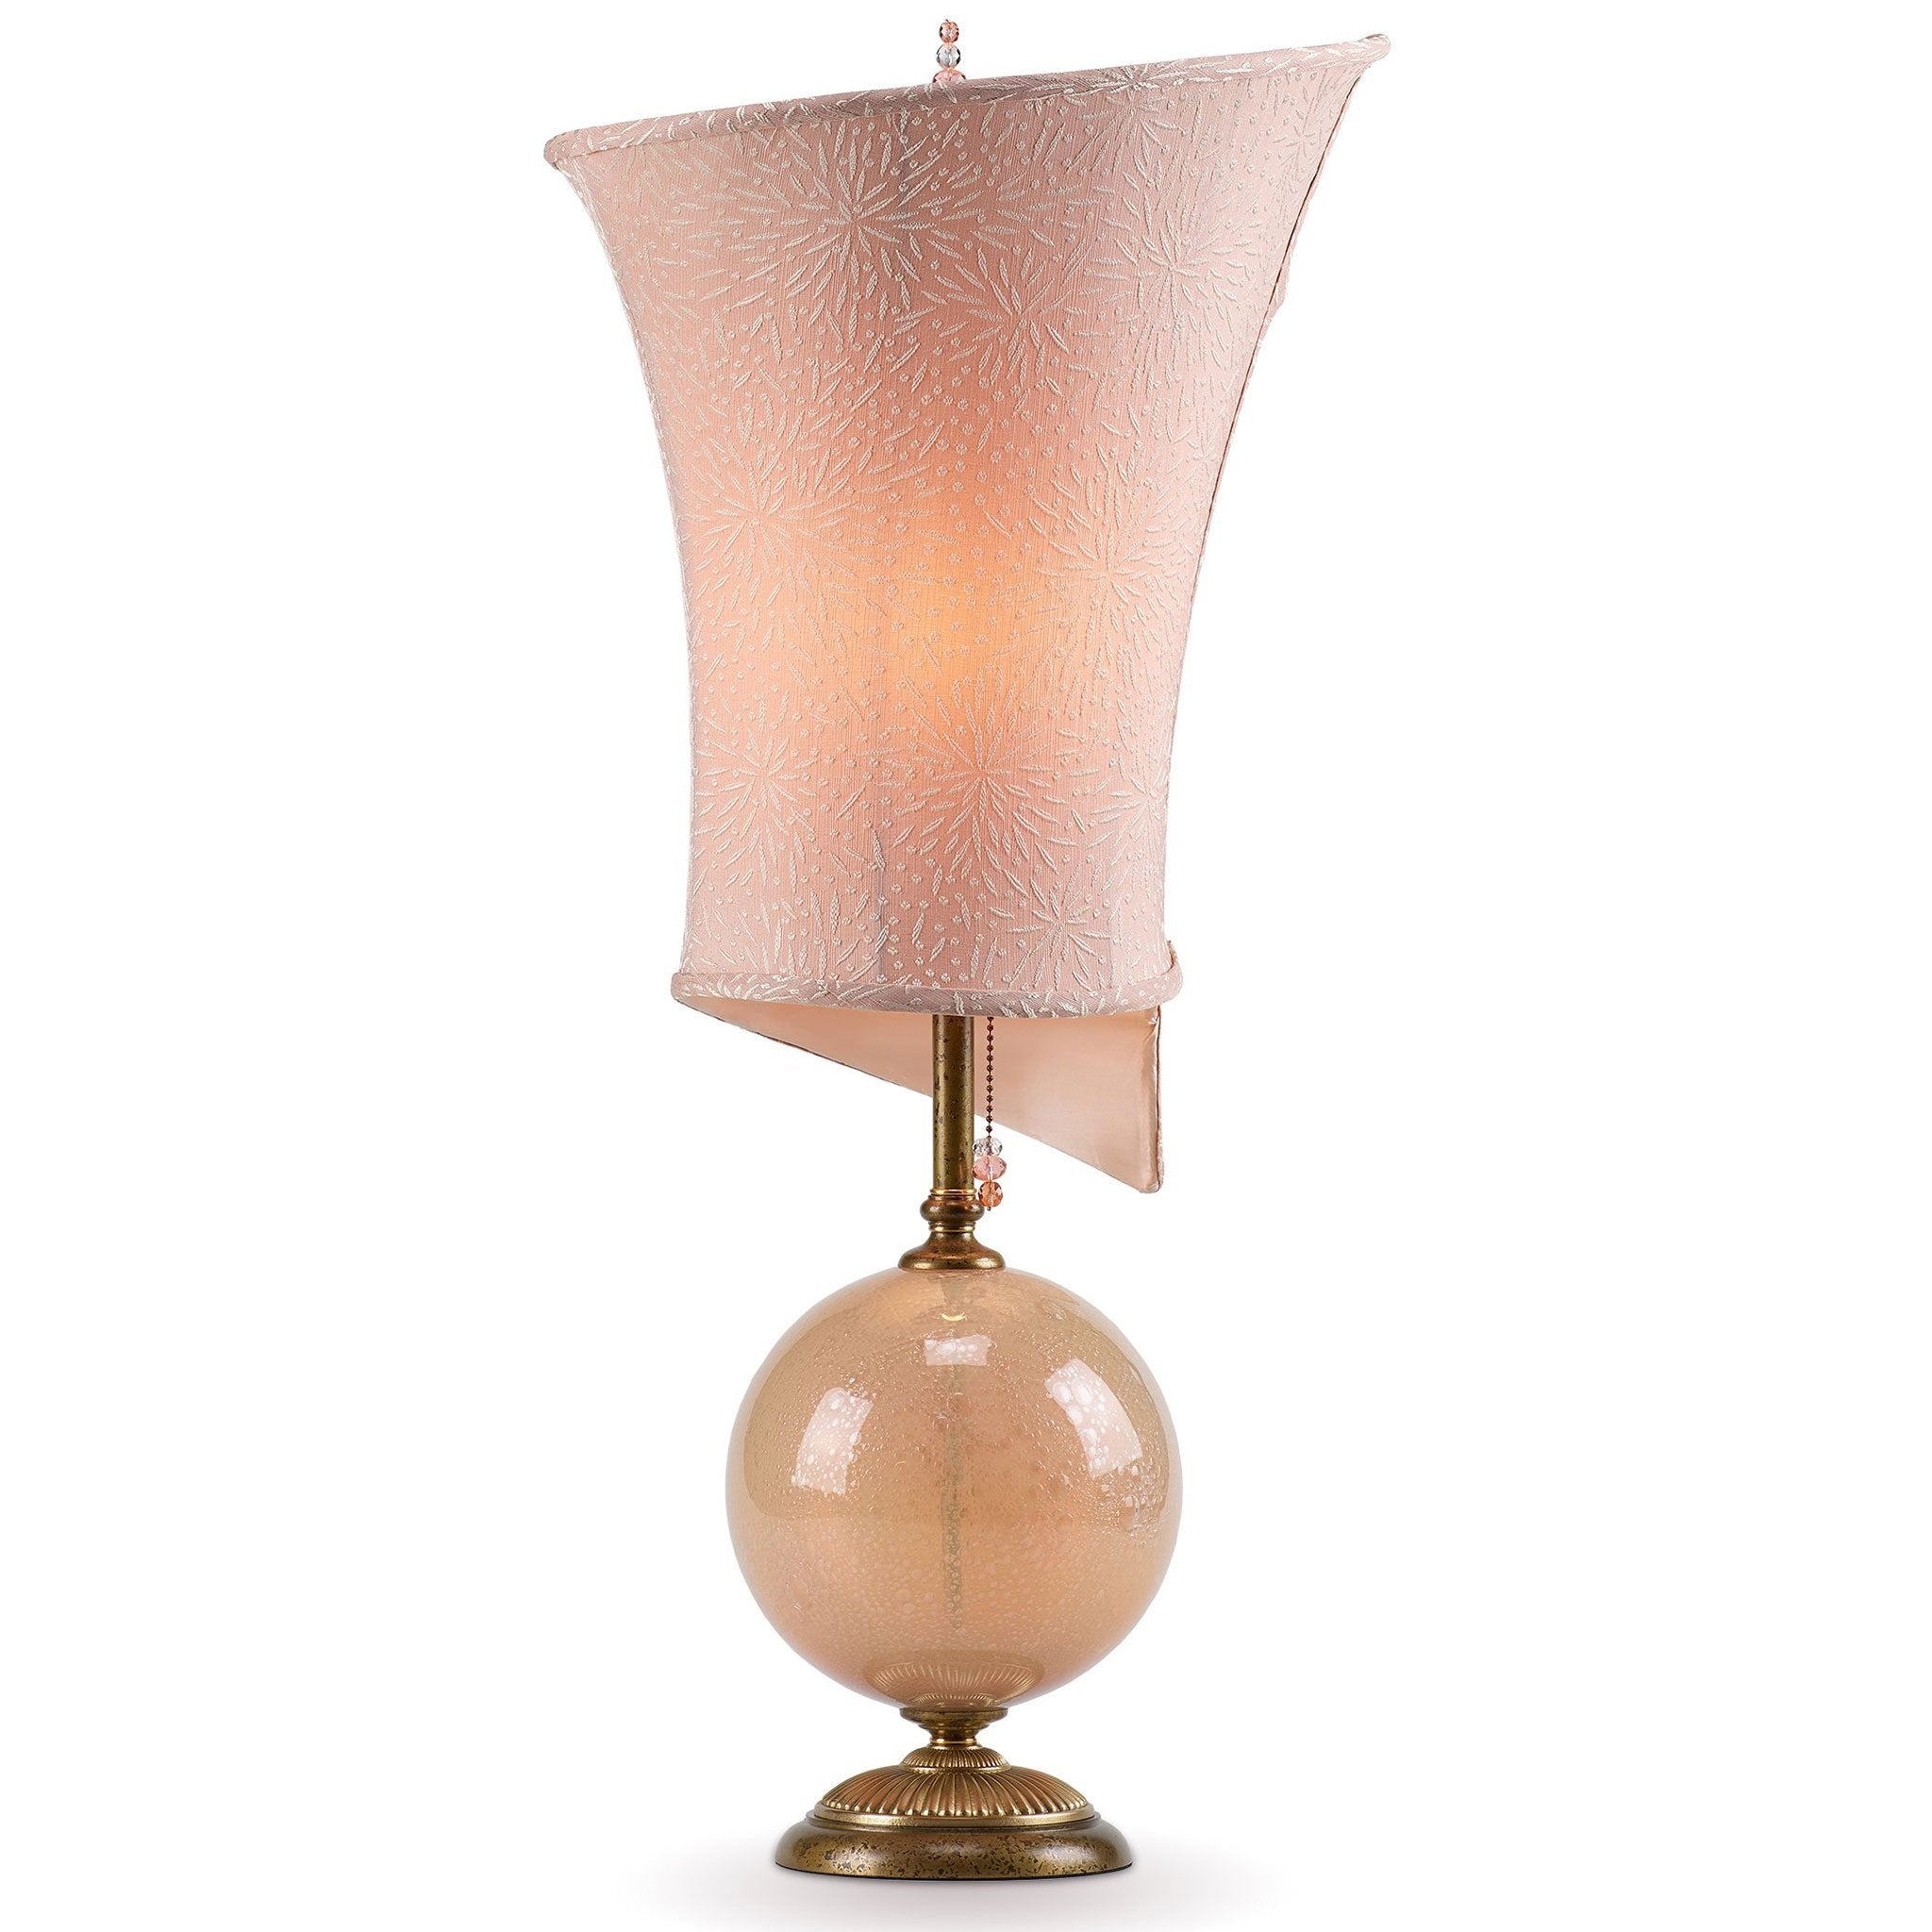 Picture of: Kinzig Design Celia Table Lamp Cream Blown Glass Base With Linen Shade Sweetheart Gallery Contemporary Craft Gallery Fine American Craft Art Design Handmade Home Personal Accessories